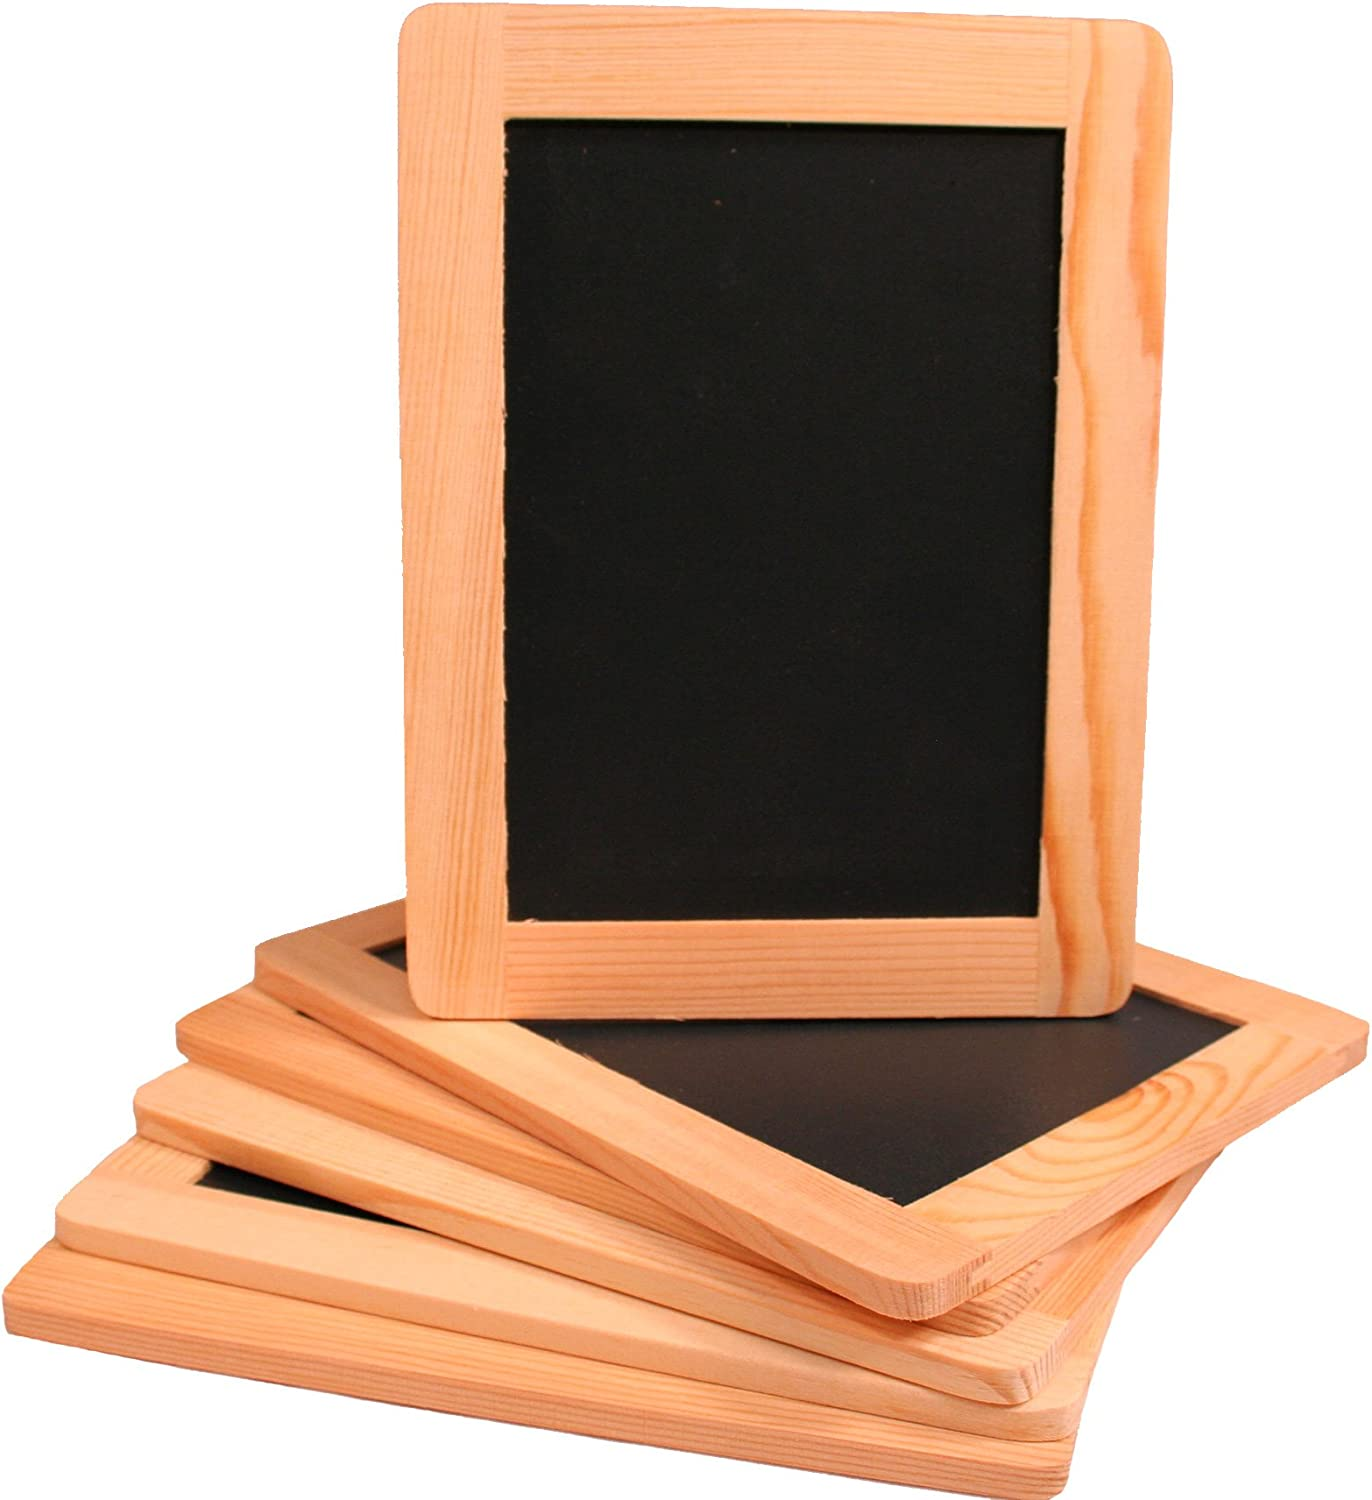 Creative Hobbies Synthetic Chalkboard with Unfinished Wood Frame, 4 x 6 Inch -Pack of 6 Chalkboards : Small Chalkboards : Office Products